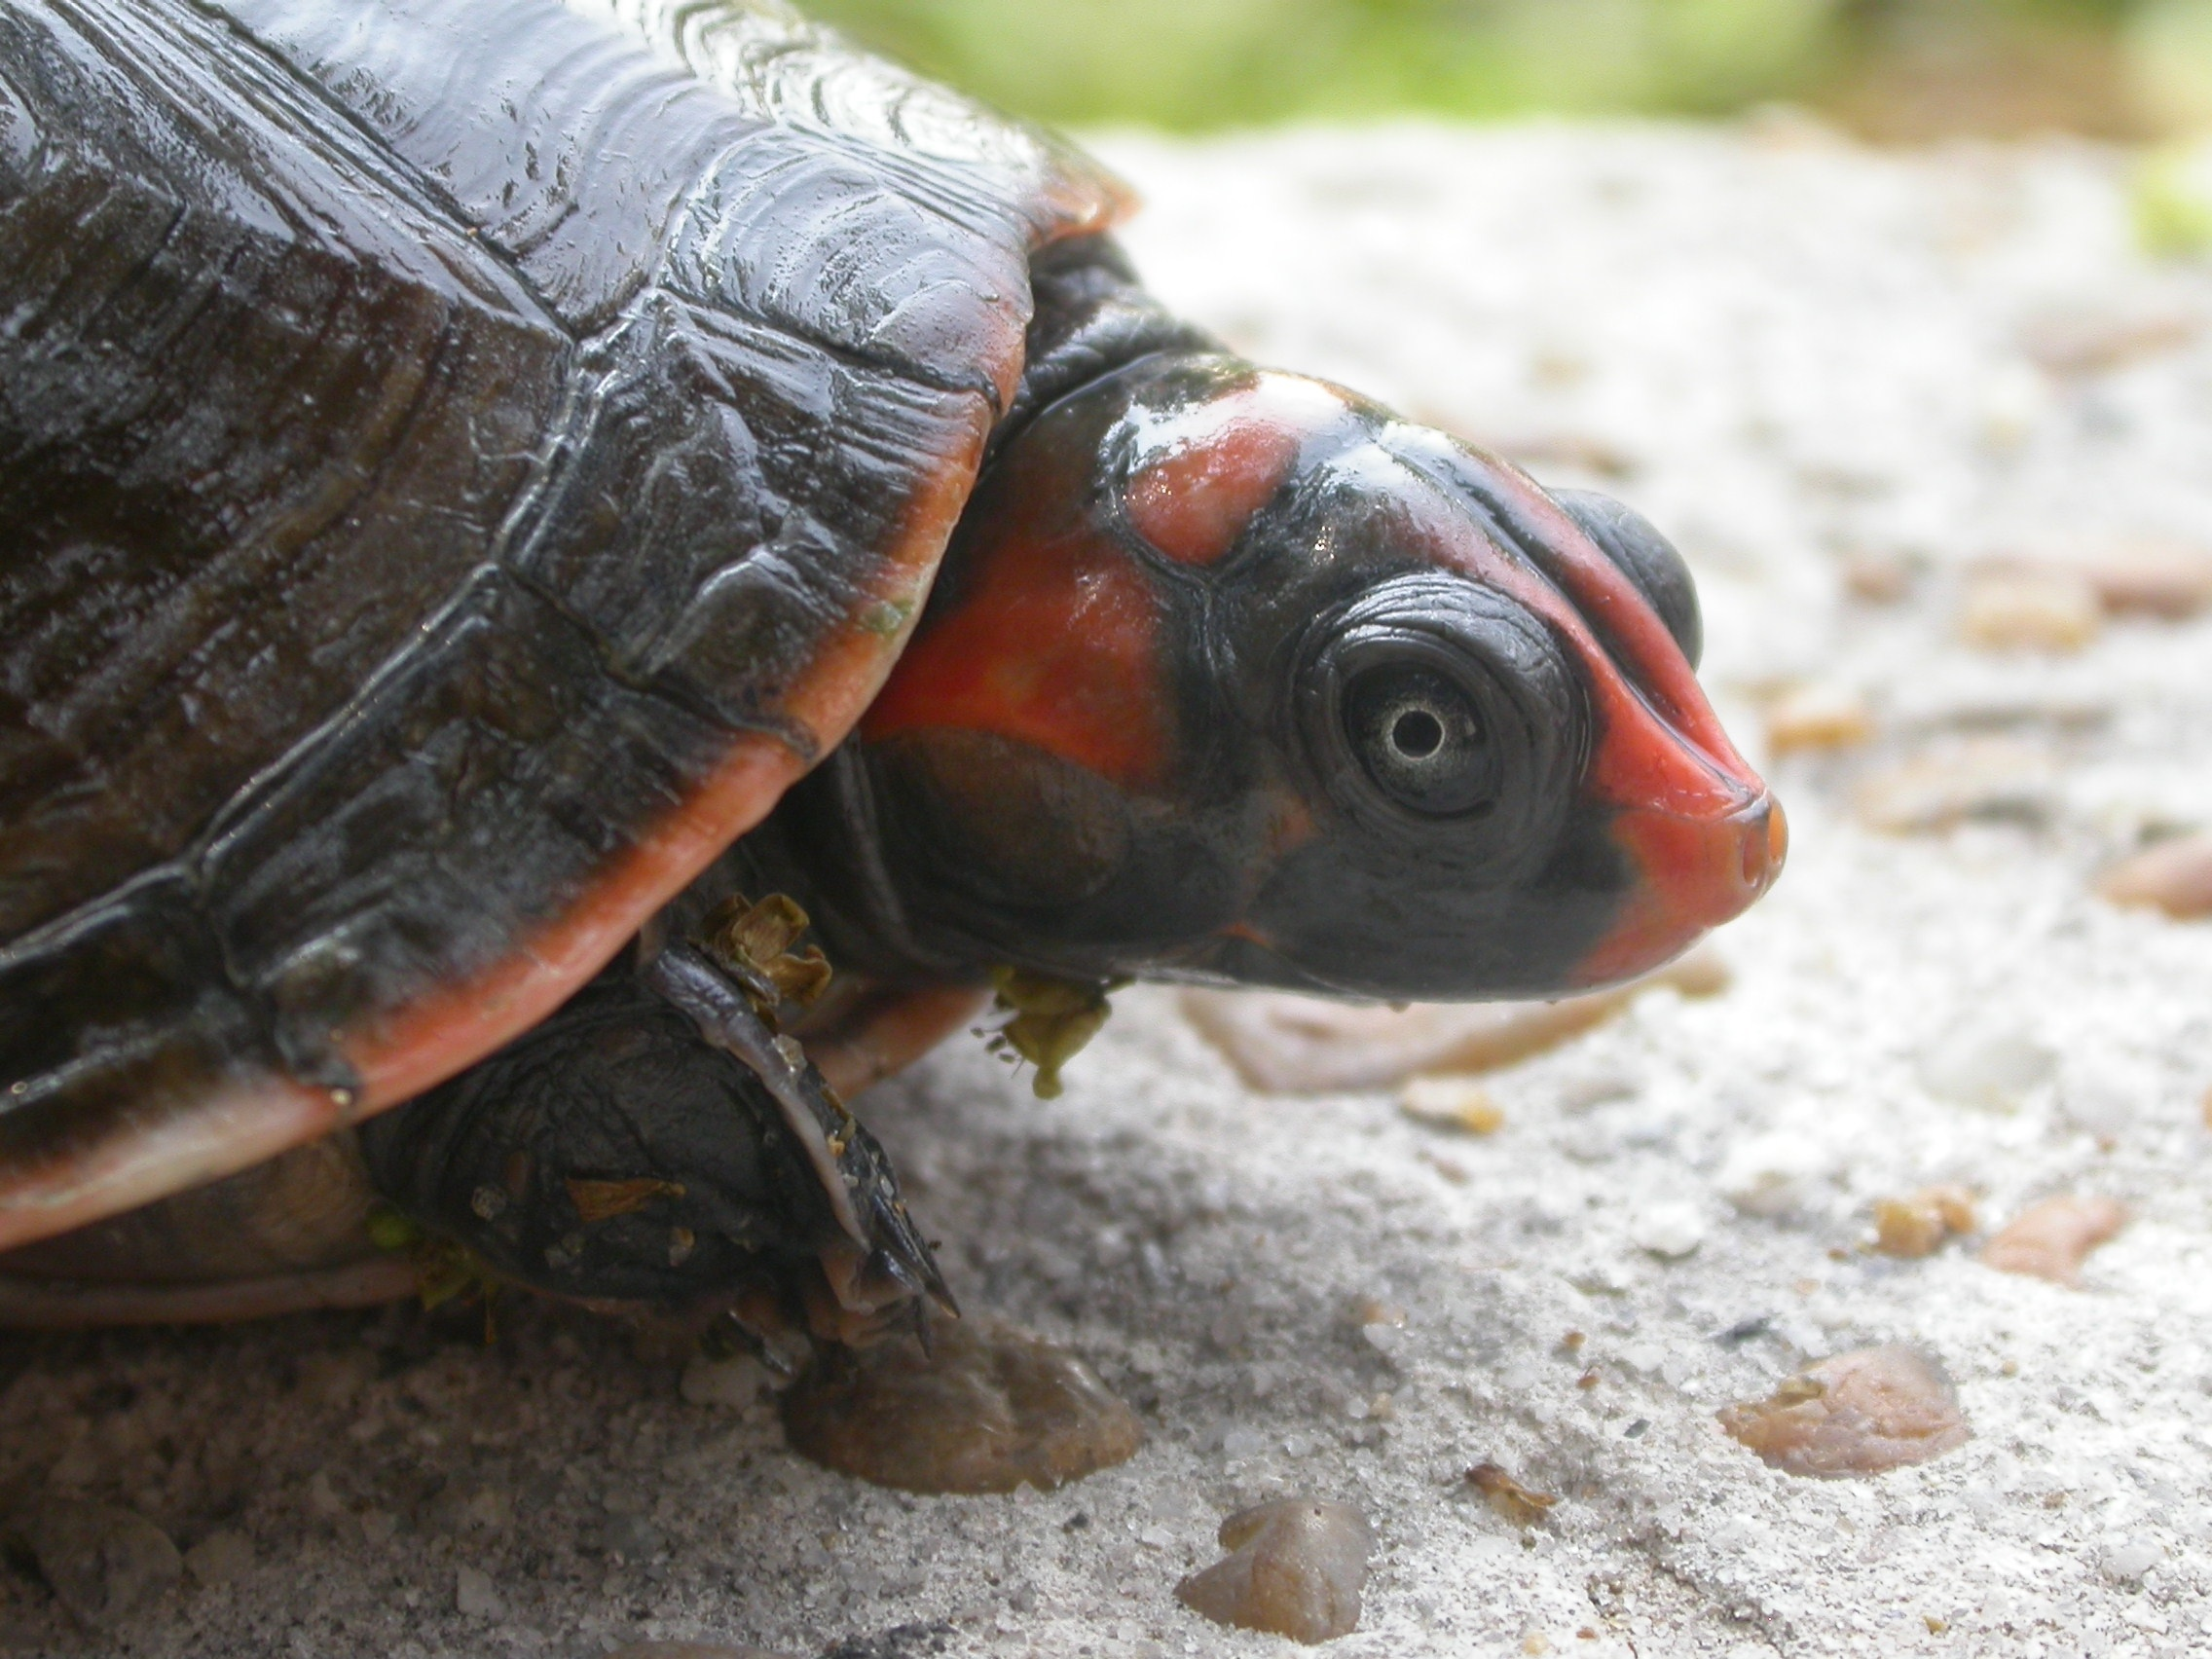 Red Headed Amazon River Turtle Encyclopedia Of Life